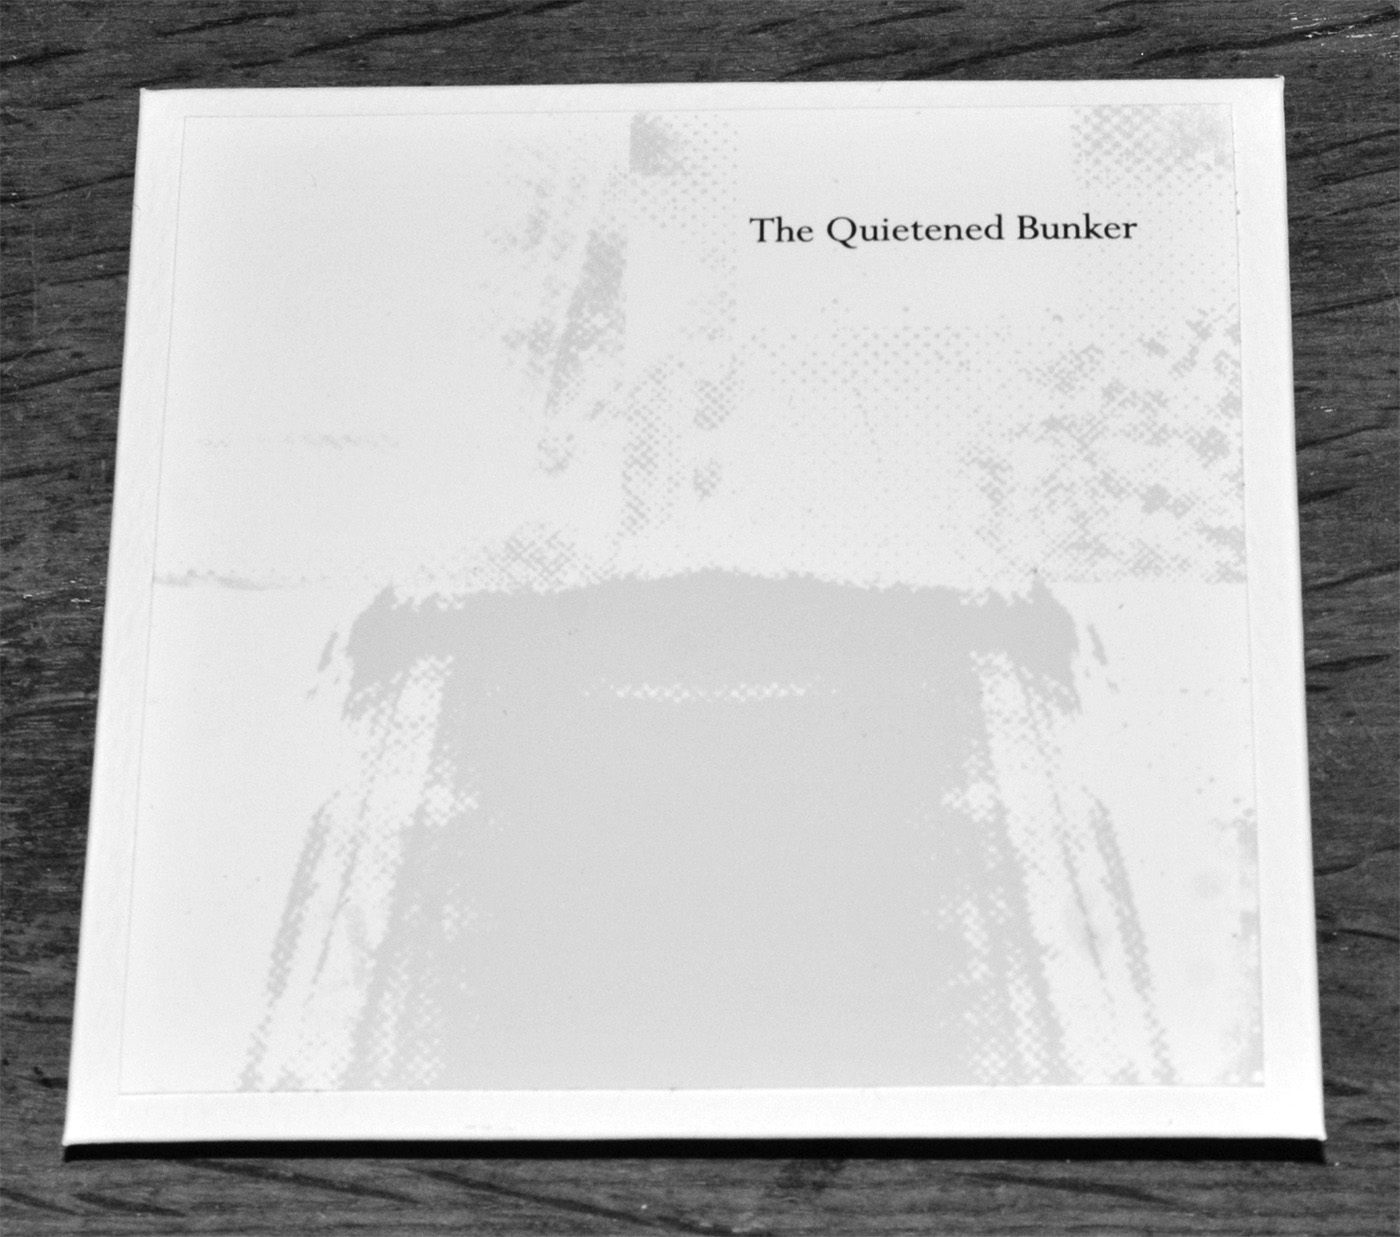 The-Quietened-Bunker-Dawn-Edition-front-A-Year-In-The-Country